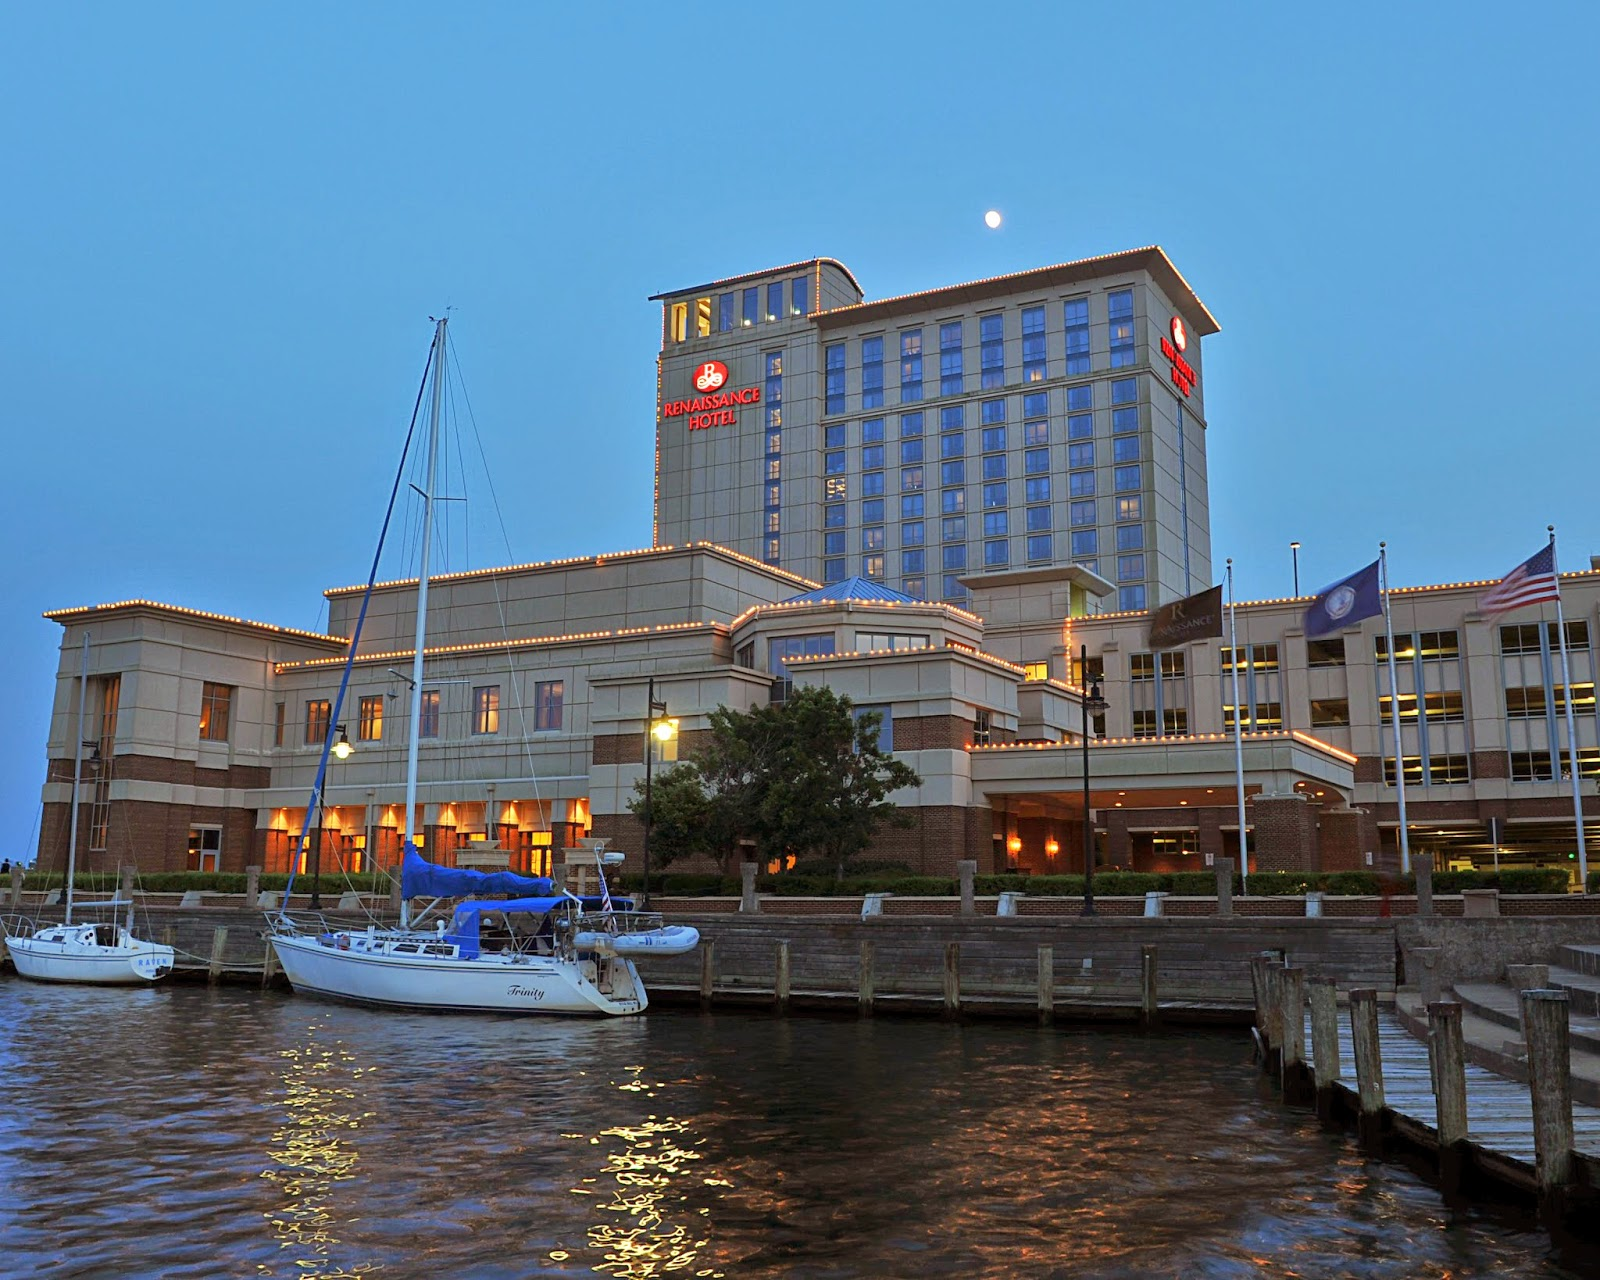 """Portsmouth Mayor Sees """"Explosion of Life"""" from New Owners of Renaissance Hotel"""